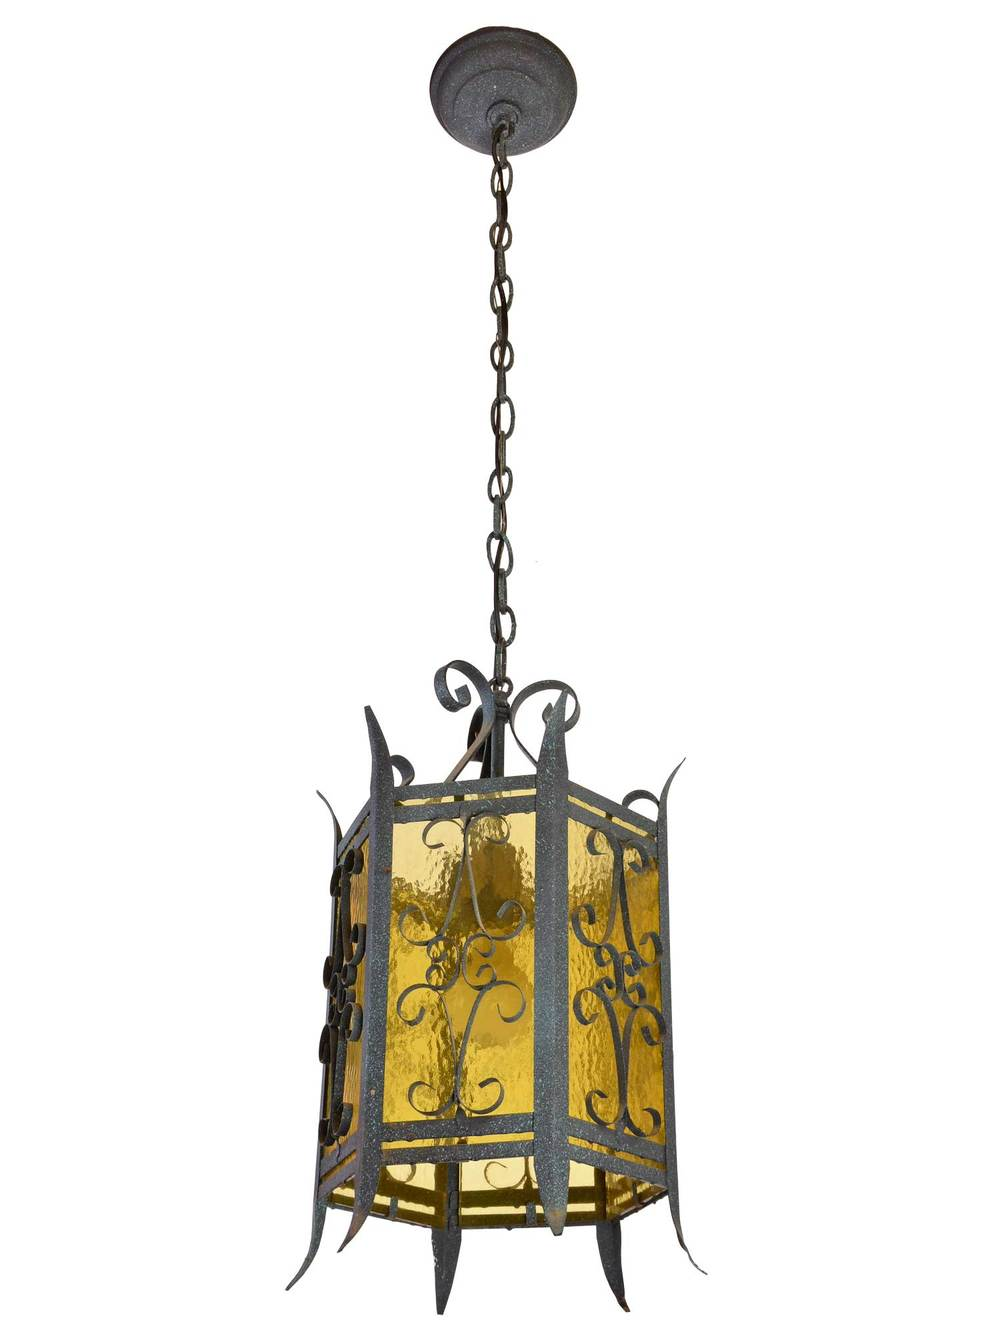 46371-steel-and-amber-glass-pendant-lantern-angle.jpg